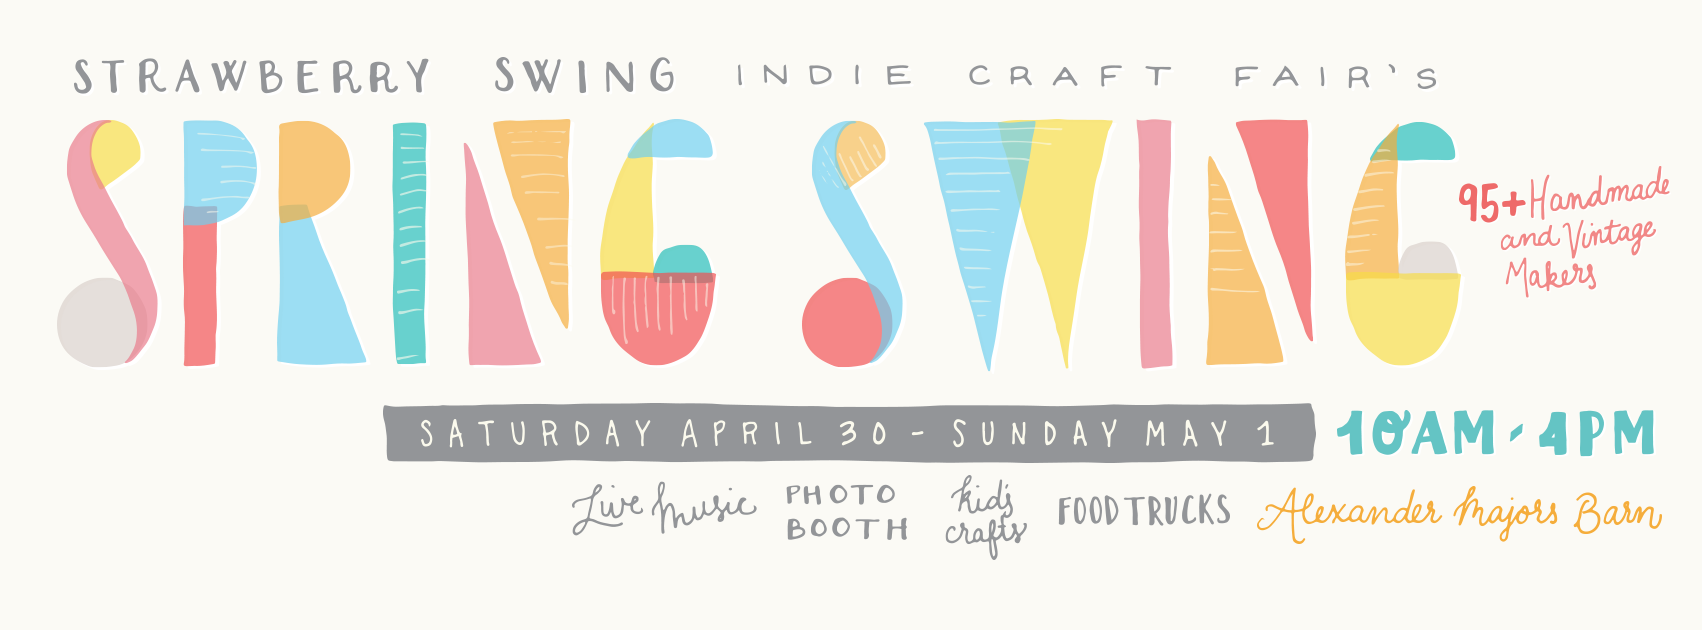 I also had the honor of designing the flyer and social media graphics for the event! Here's the Facebook cover image.